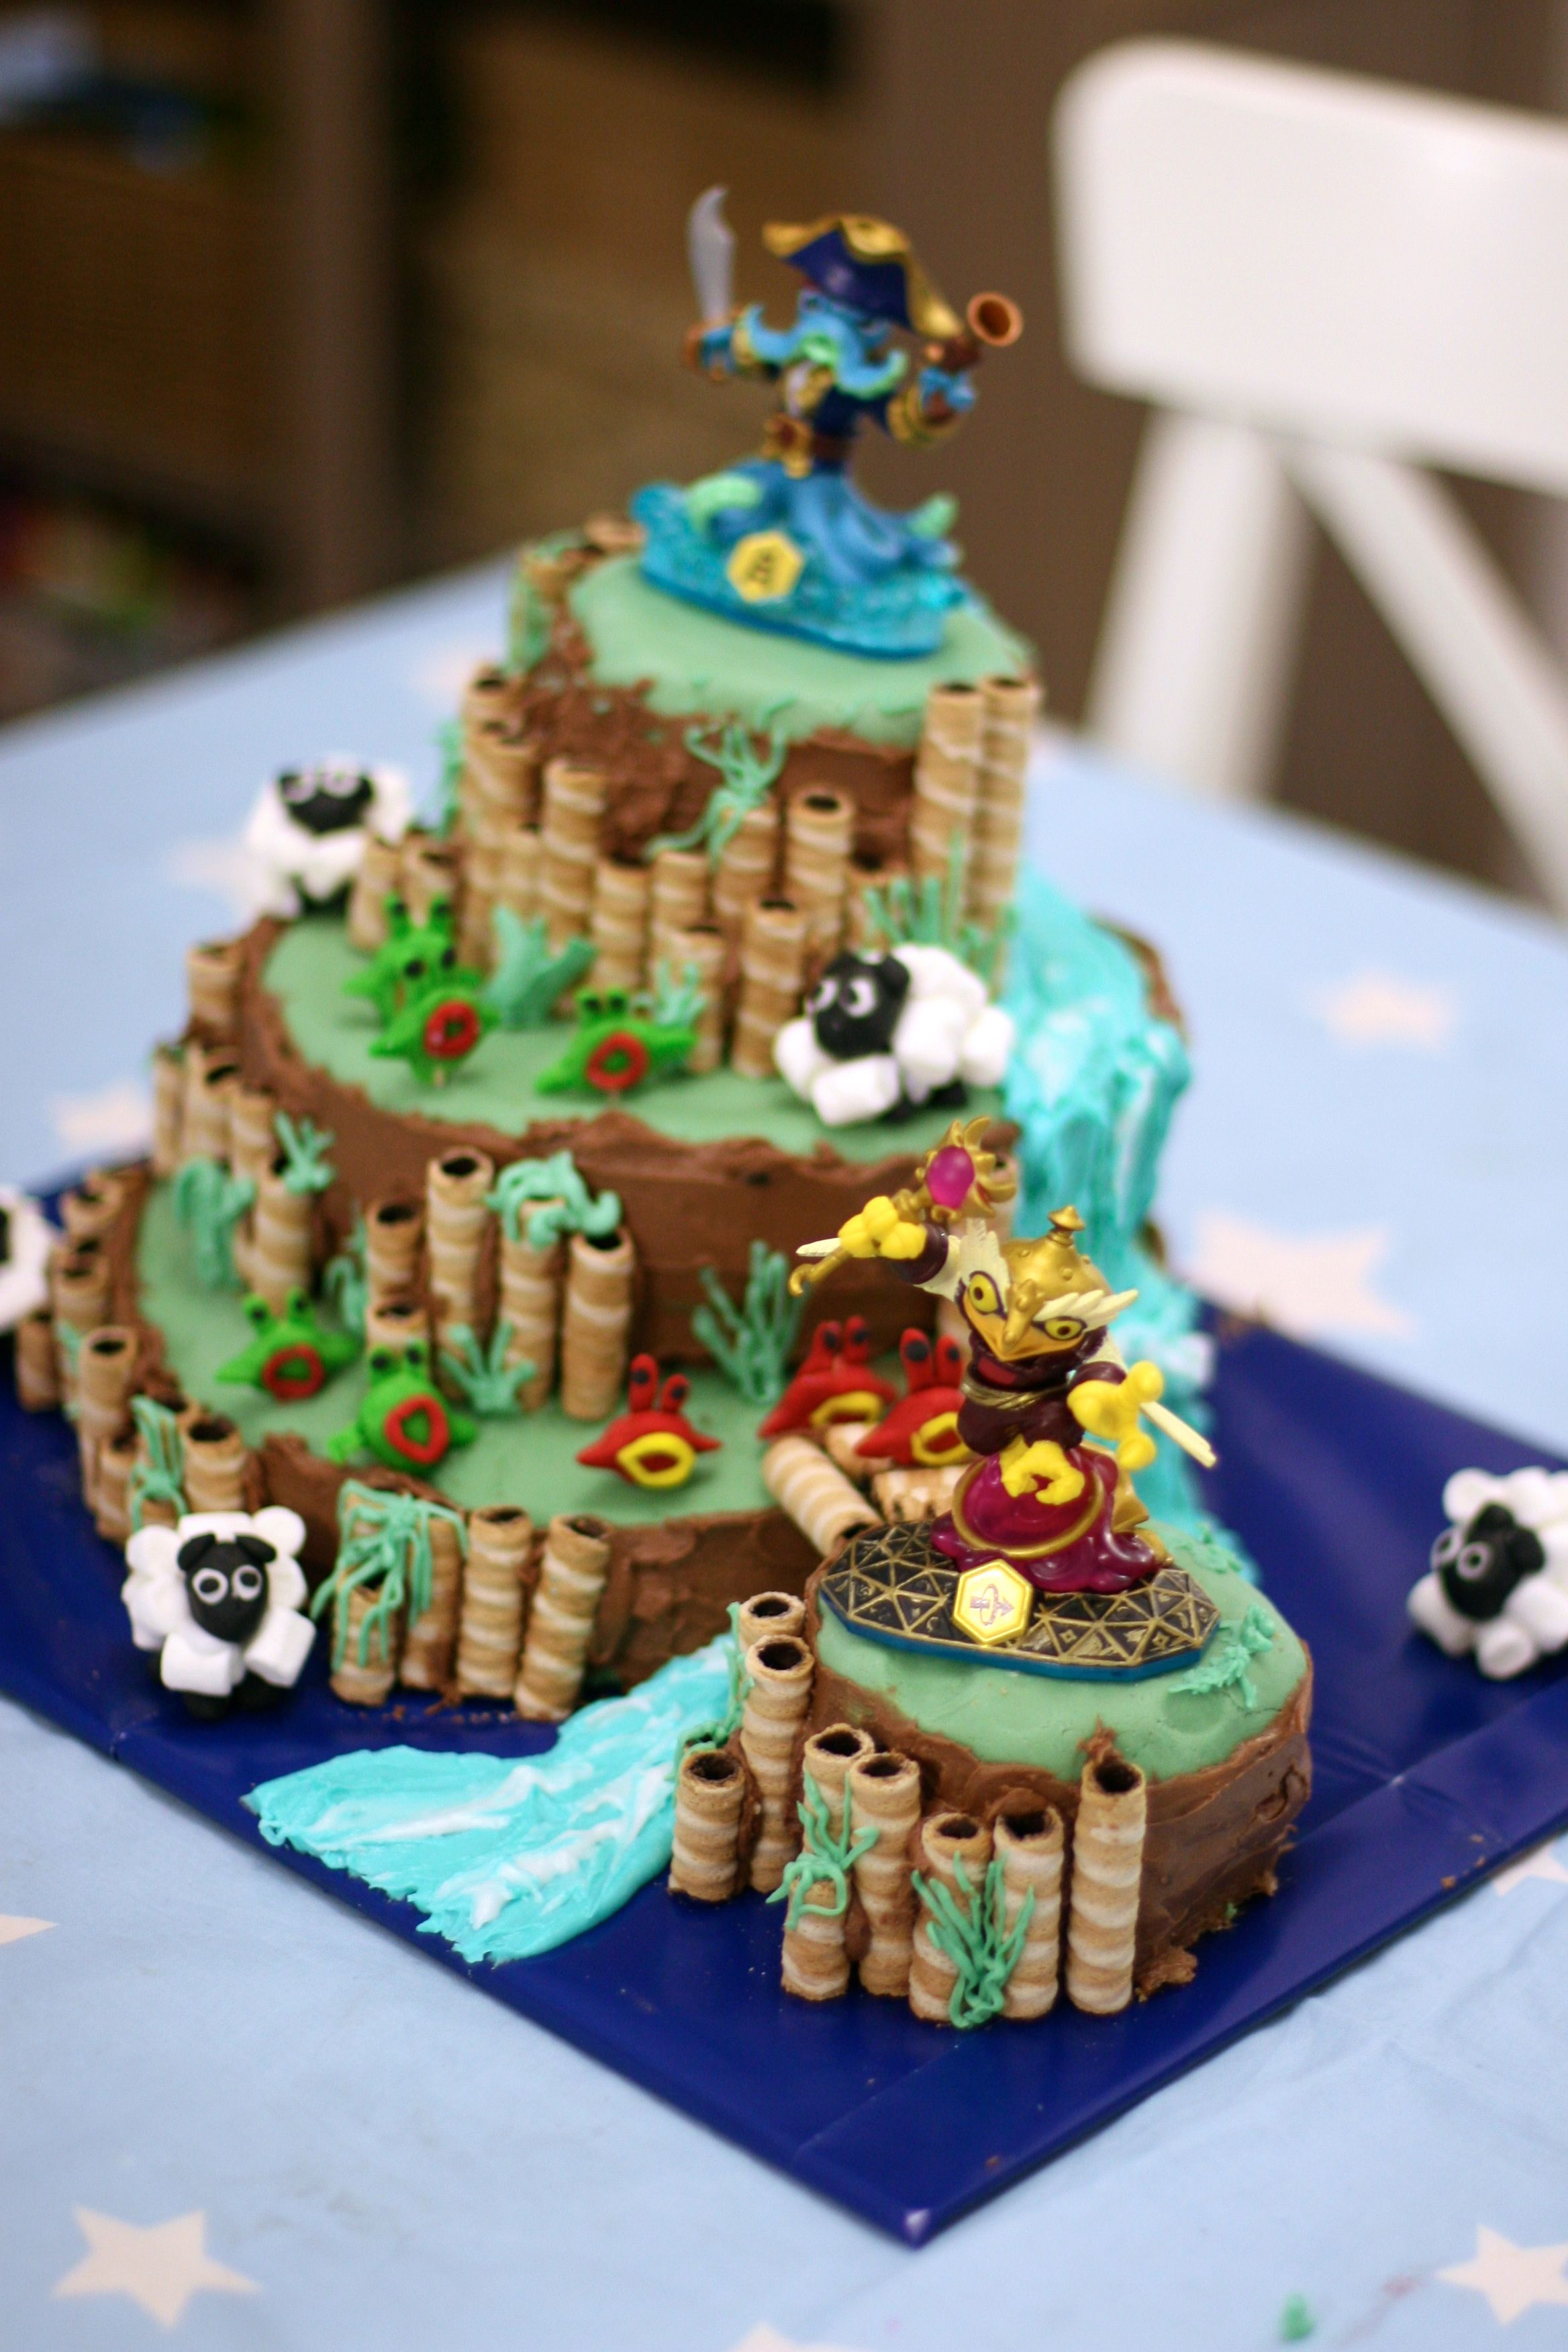 Remarkable Skylander Birthday Cake Features 4 Levels River Bridge Sheep Funny Birthday Cards Online Inifofree Goldxyz